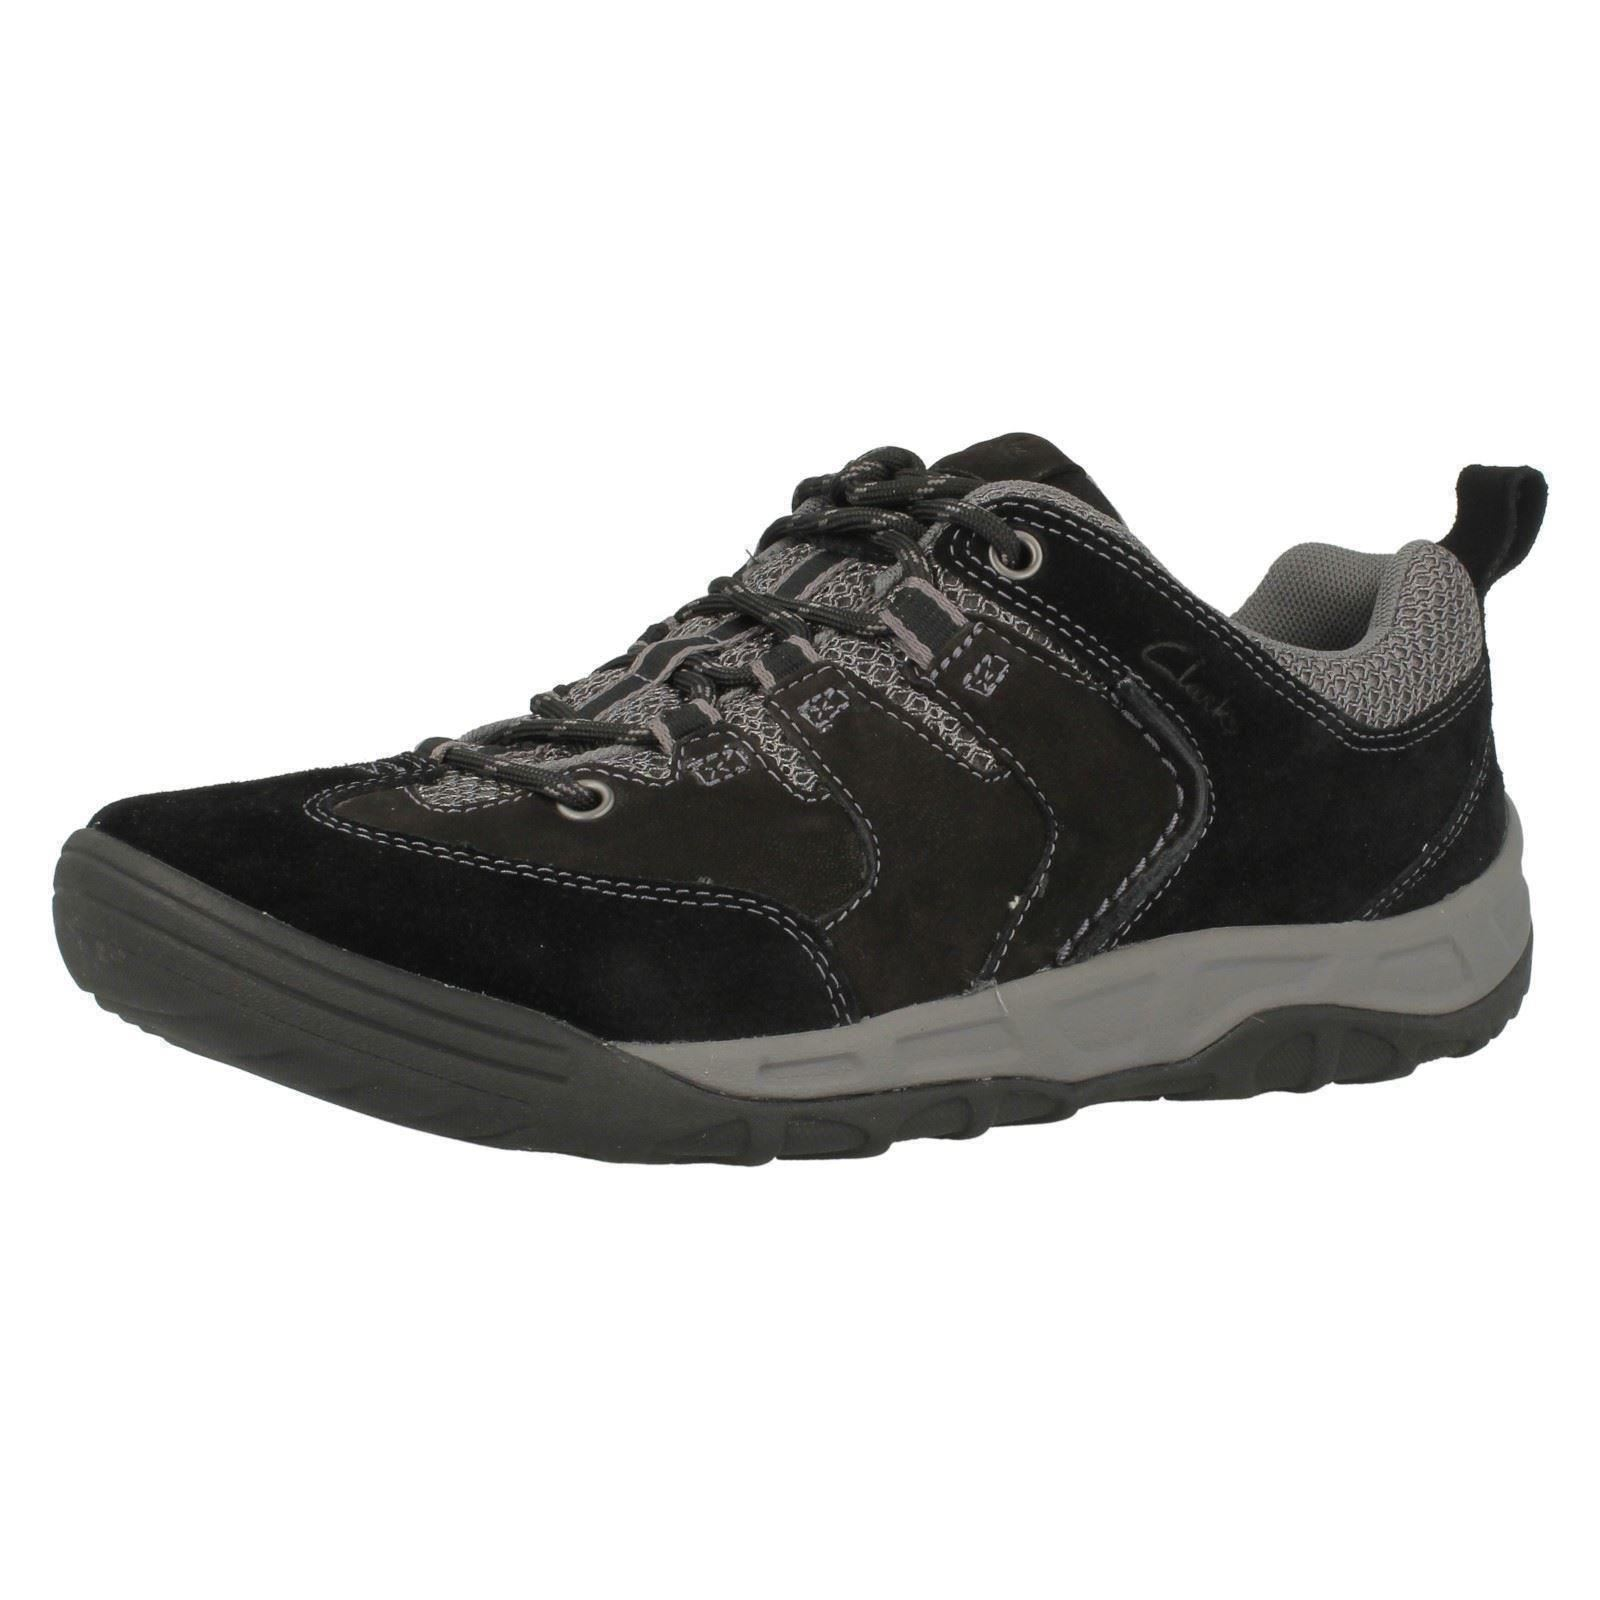 clarks mens trainers; Clarks Trainer Shoes for Men; Skip to page navigation. Filter (1) Clarks Trainer Shoes for Men. Shop by Shoe Size. Clarks Mens Trainers Burgundy Trigenic Flex Lace Up Sport Casual Suede Shoes. £ 1 sold. Men's Clarks Casual Lace Up Trainers .